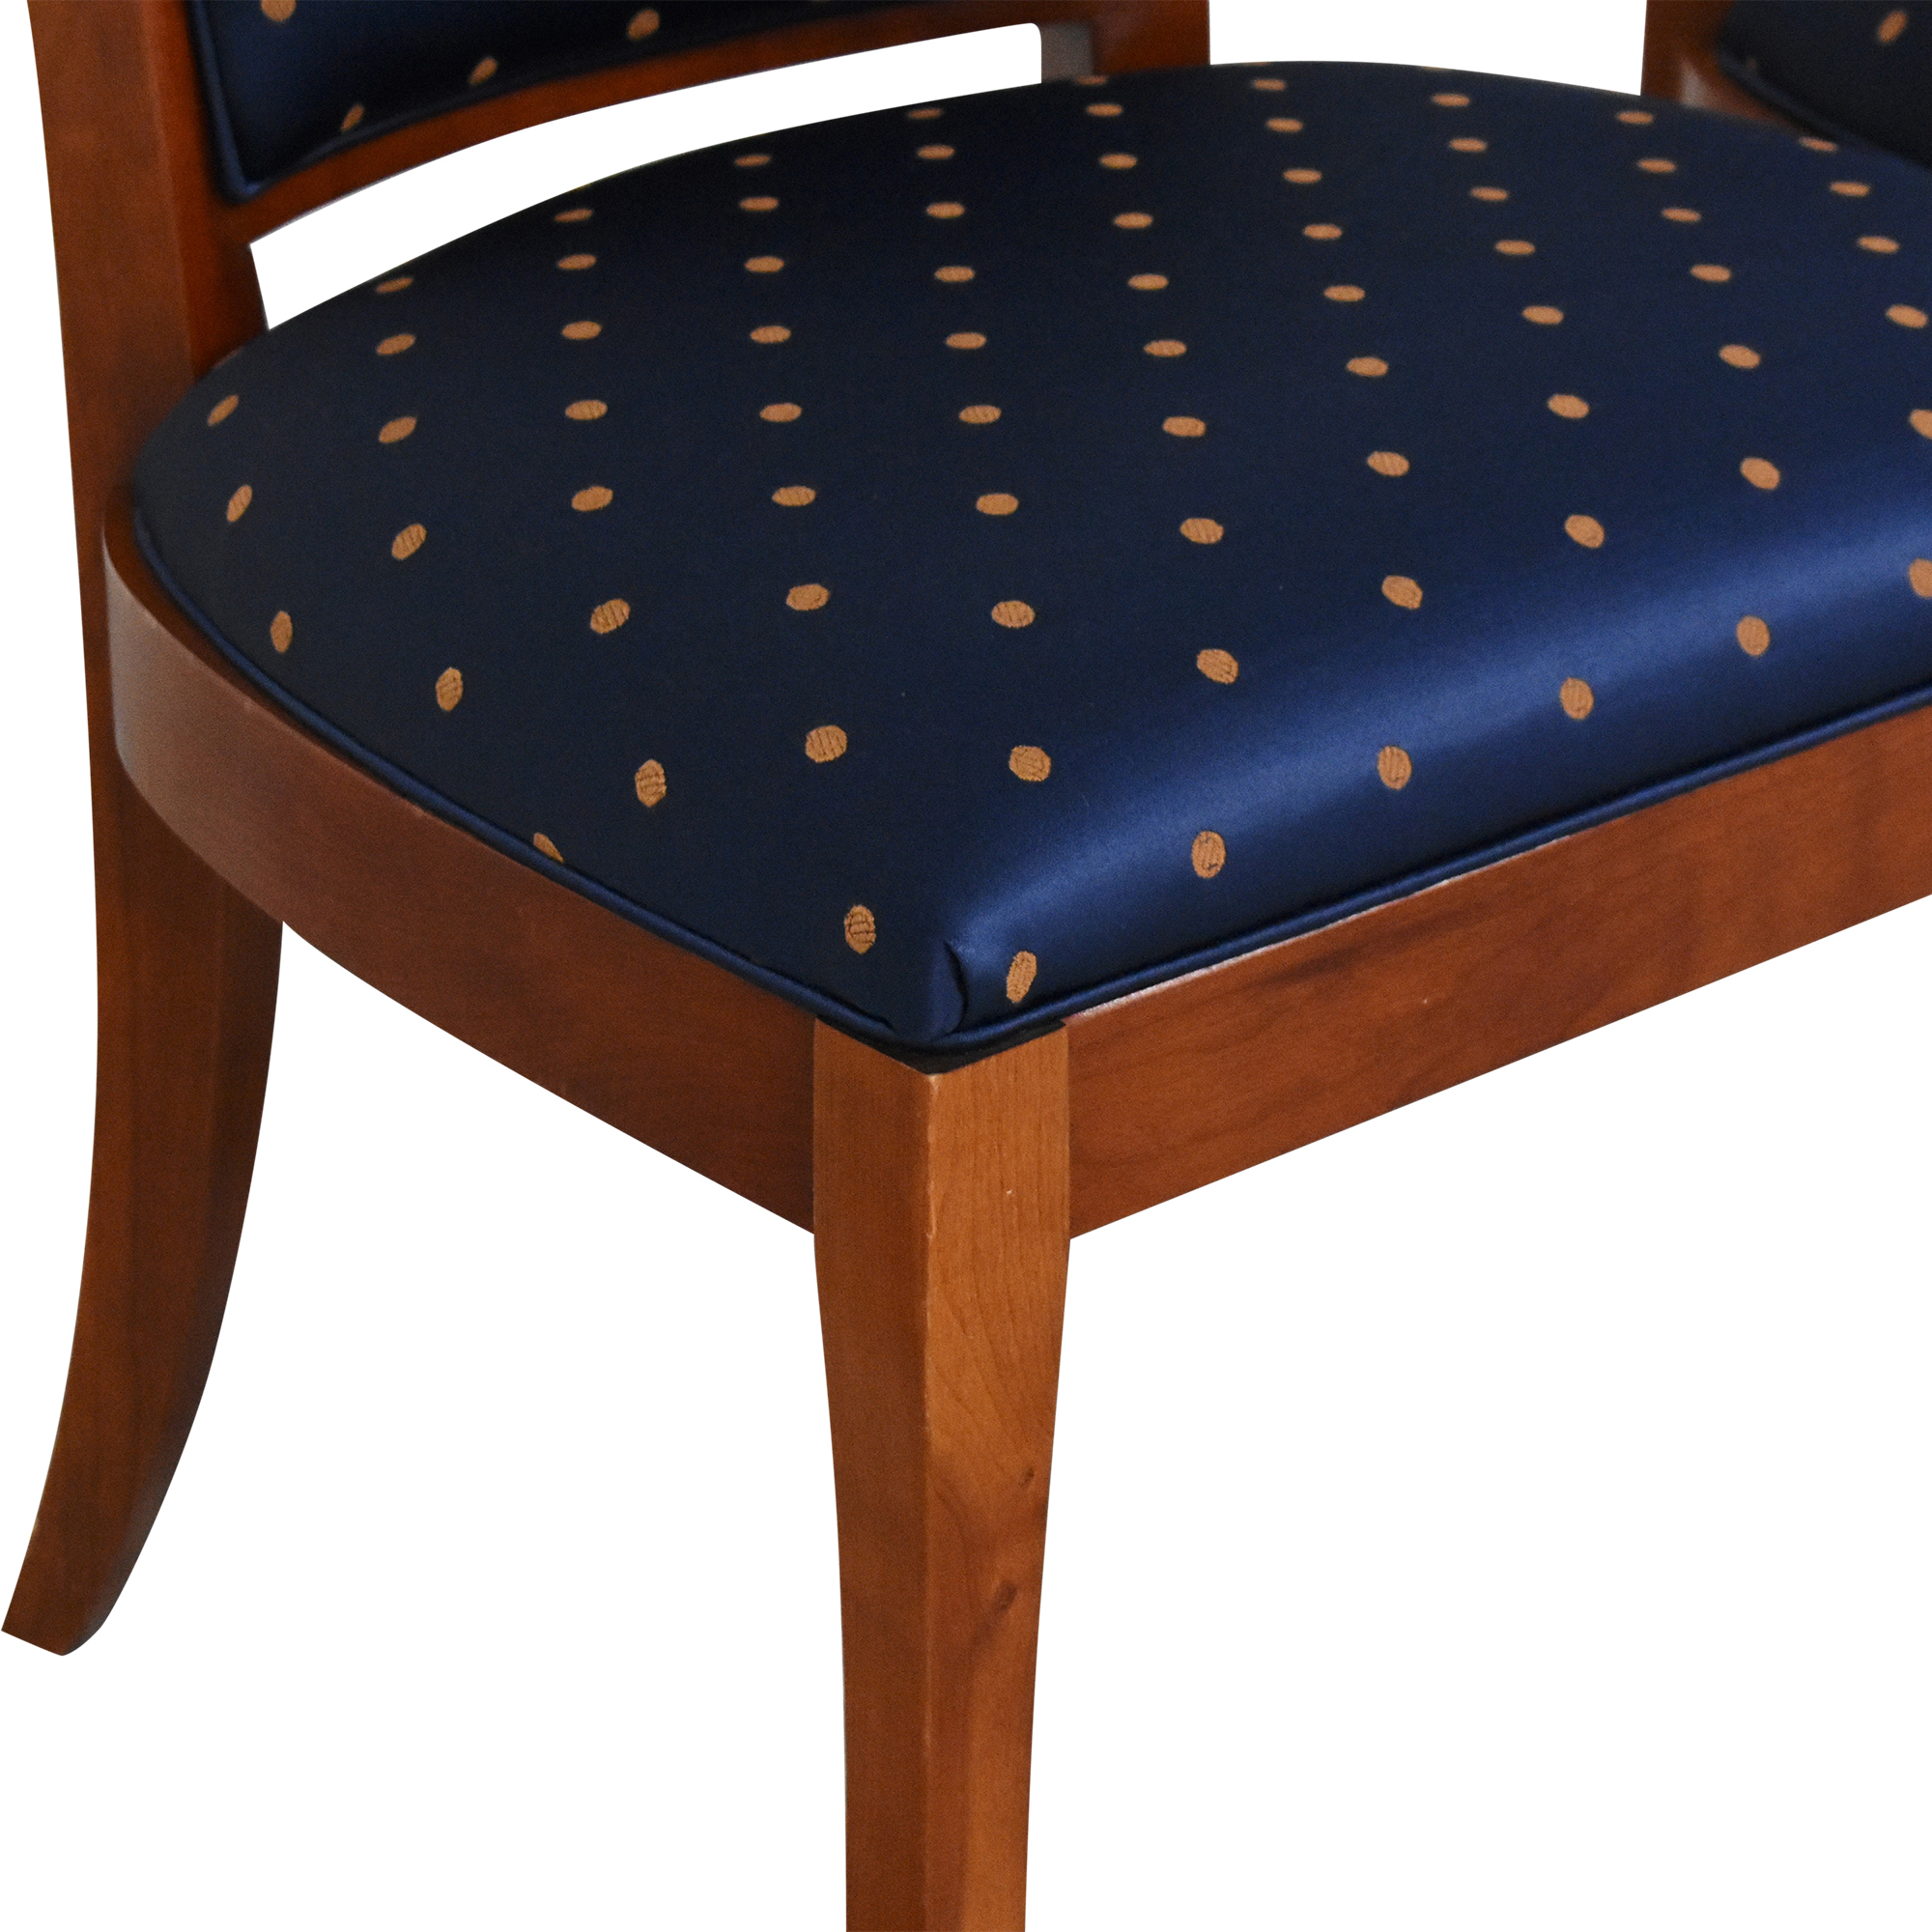 Ethan Allen Ethan Allen Medallion Collection Dining Side Chairs dimensions